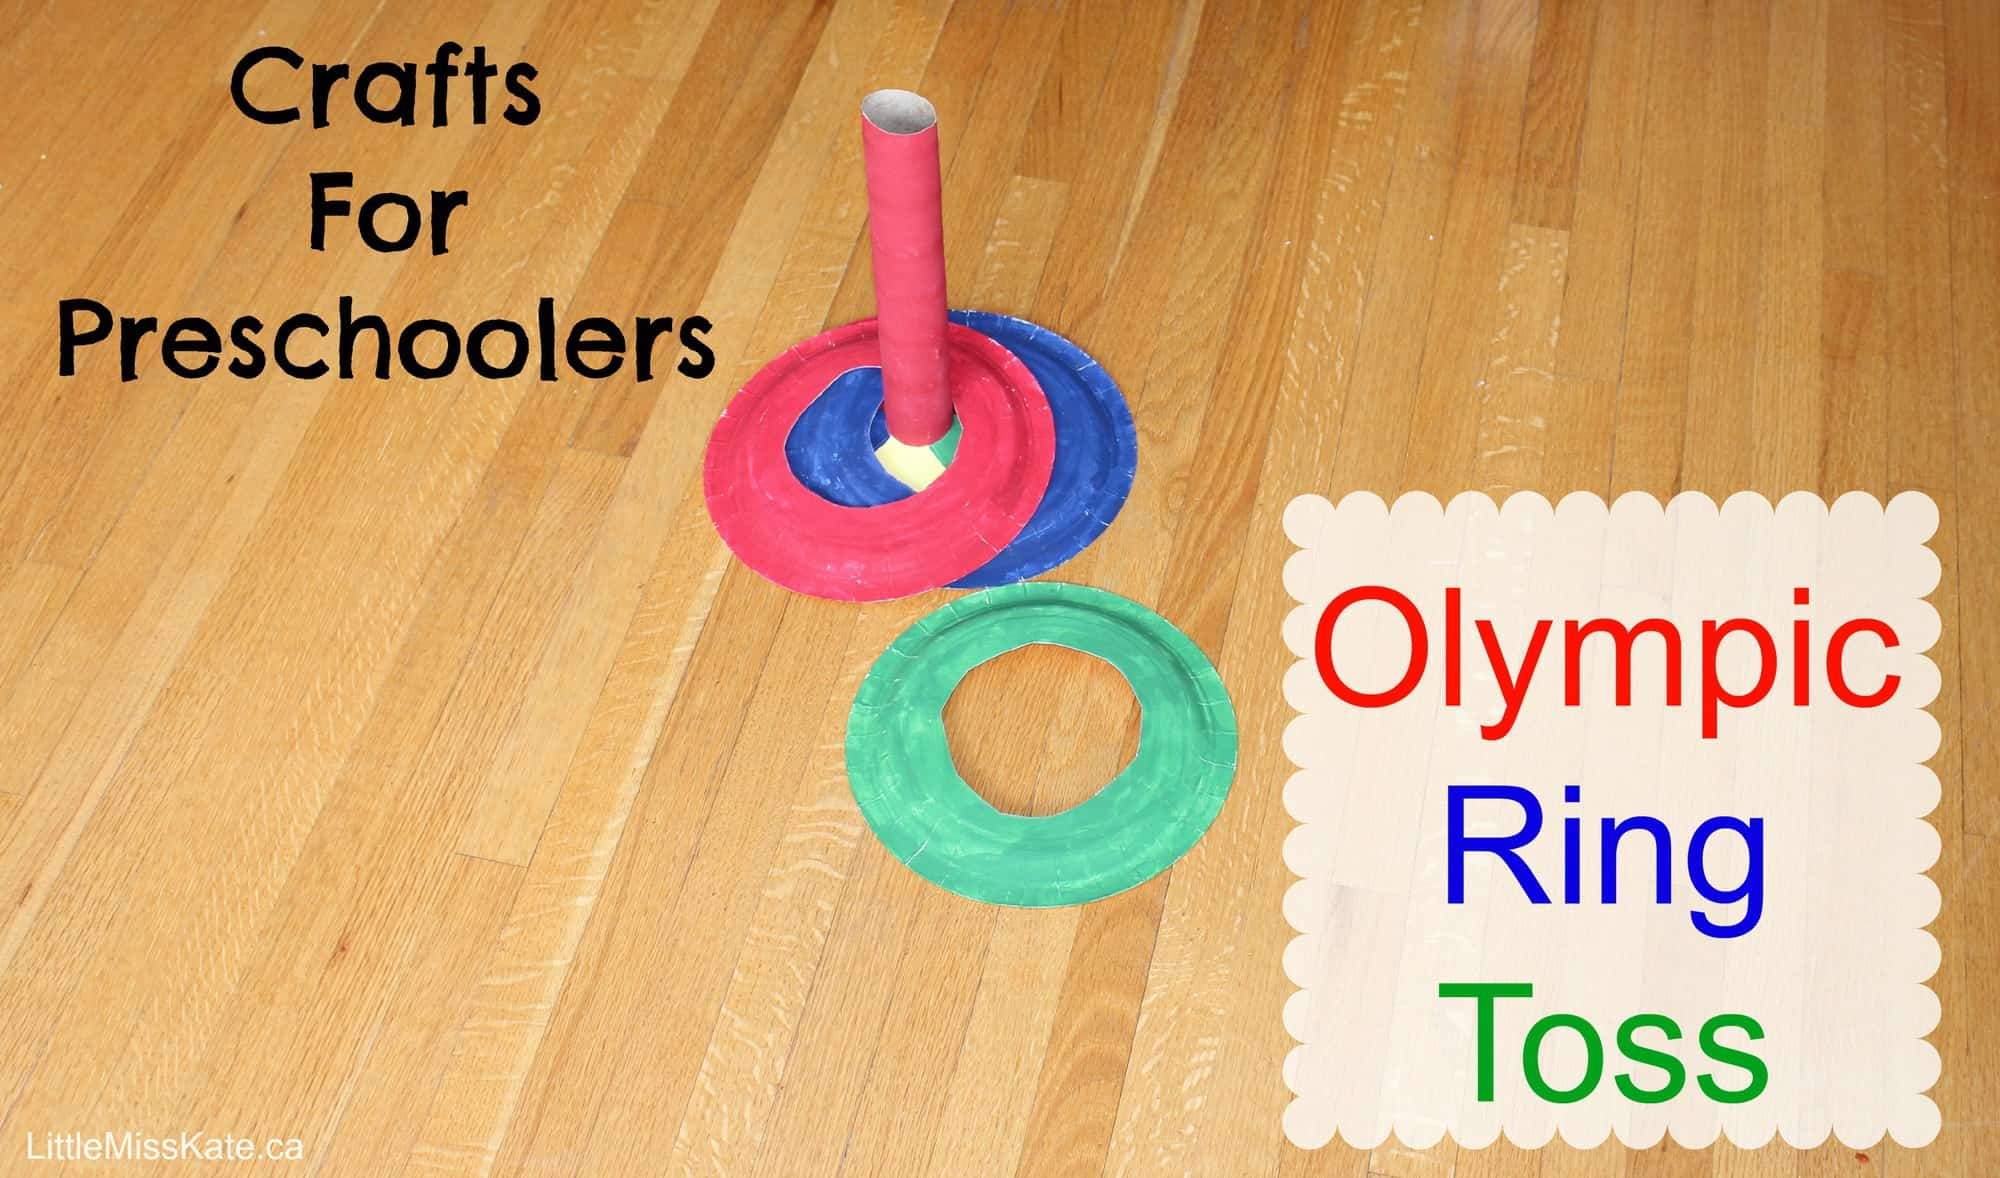 Olympic crafts - Olympic Rong Toss via LittleMissKate.ca